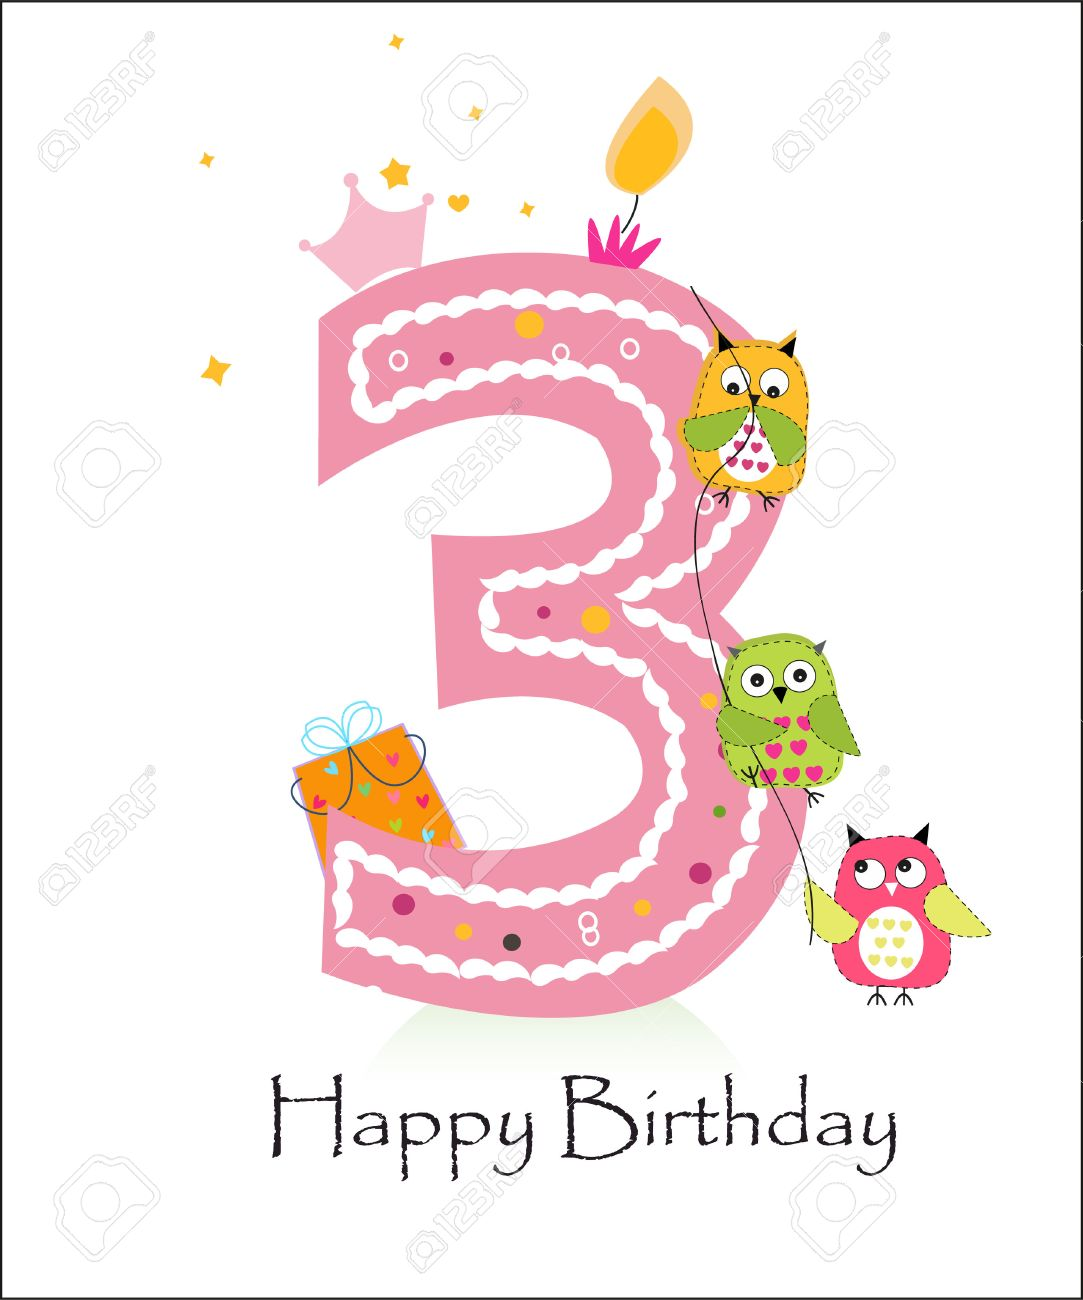 Happy third birthday, baby girl greeting card with owls vector - 47878763